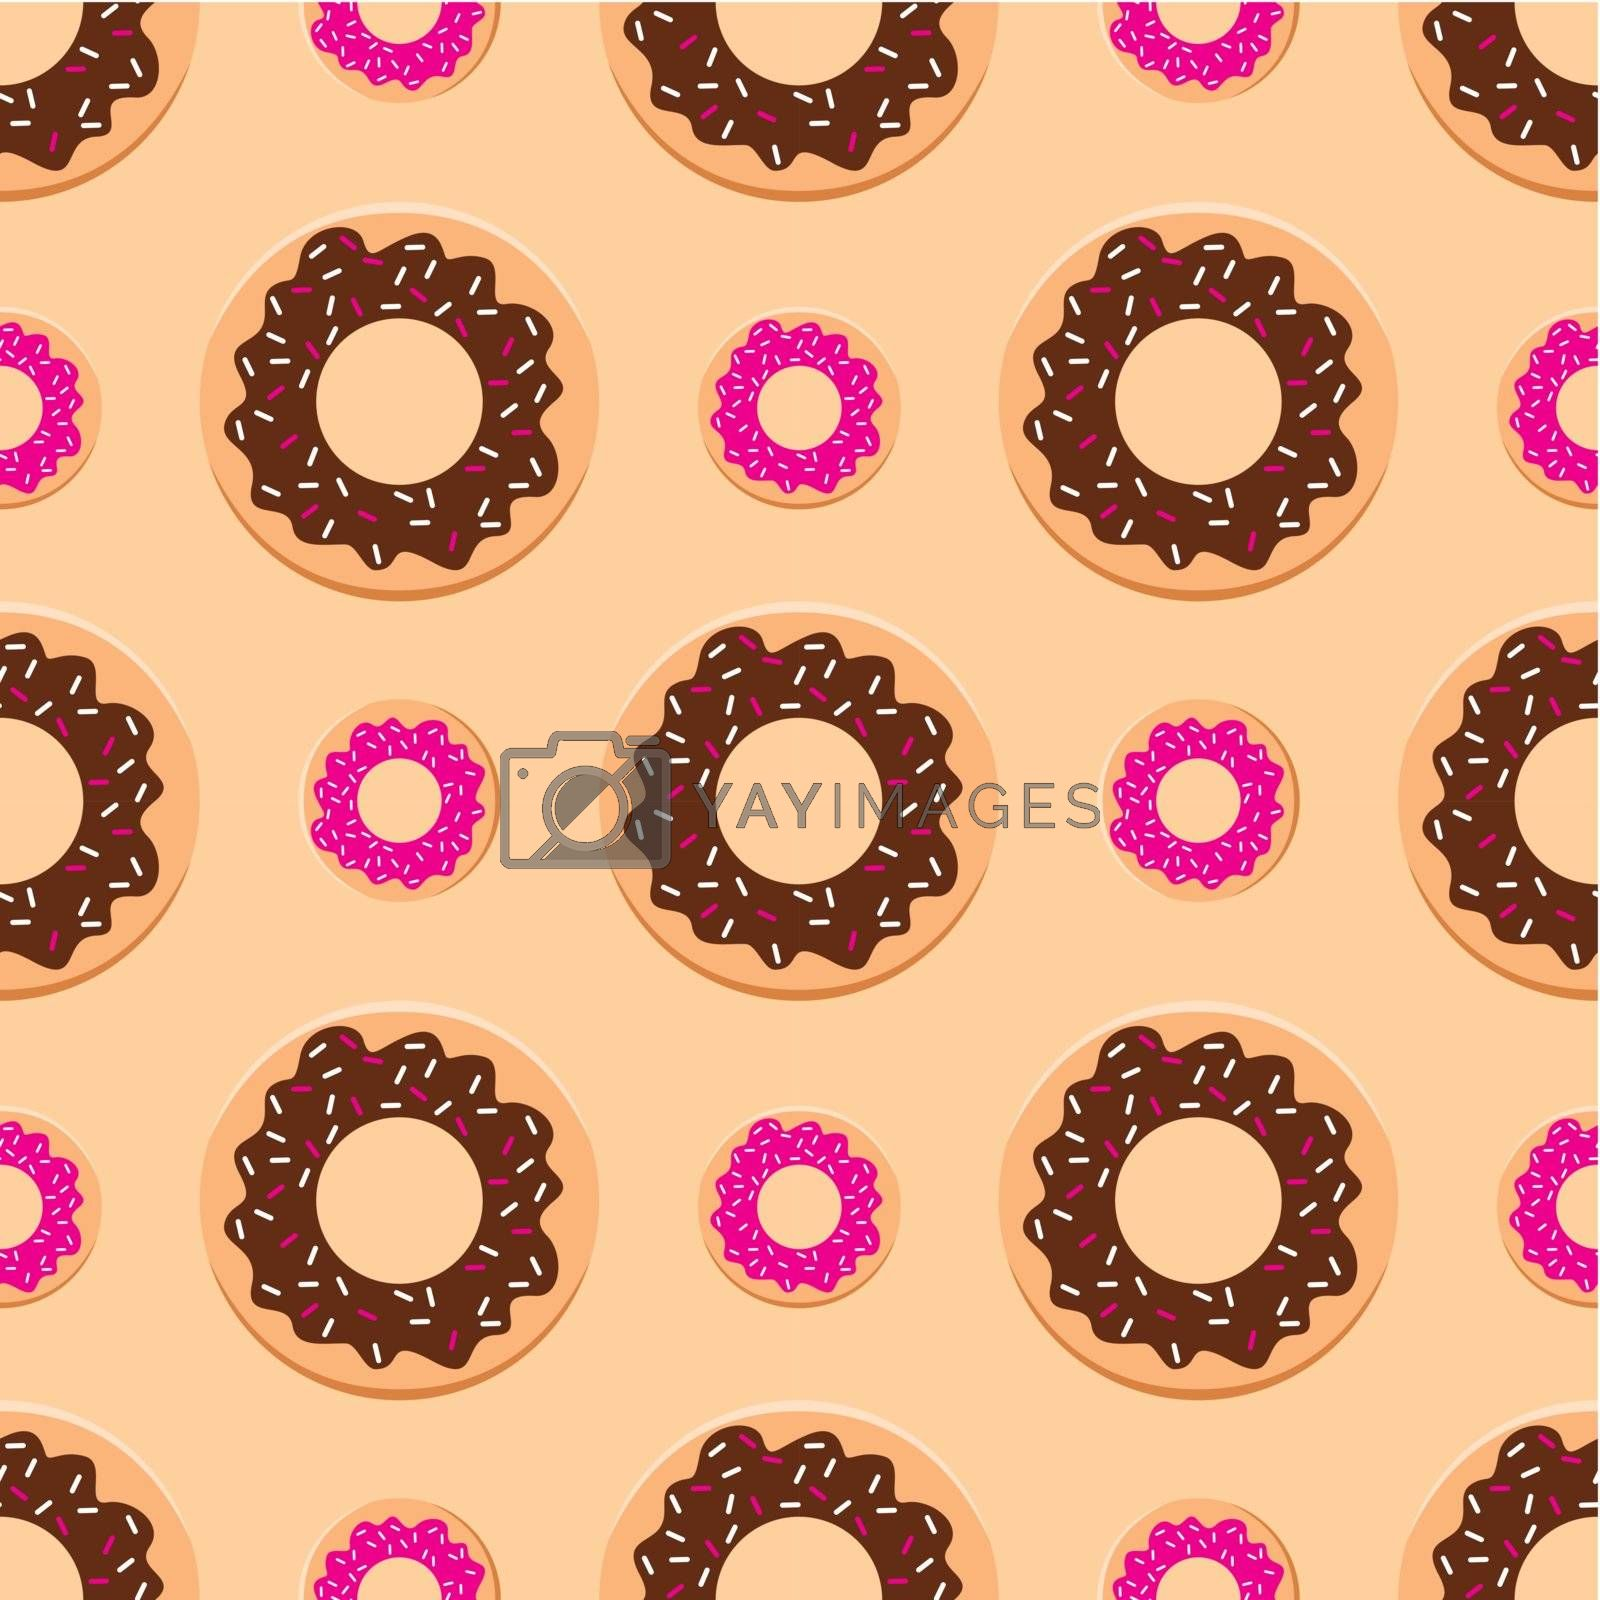 Image of Seamless pattern with donuts of different colors and sizes.